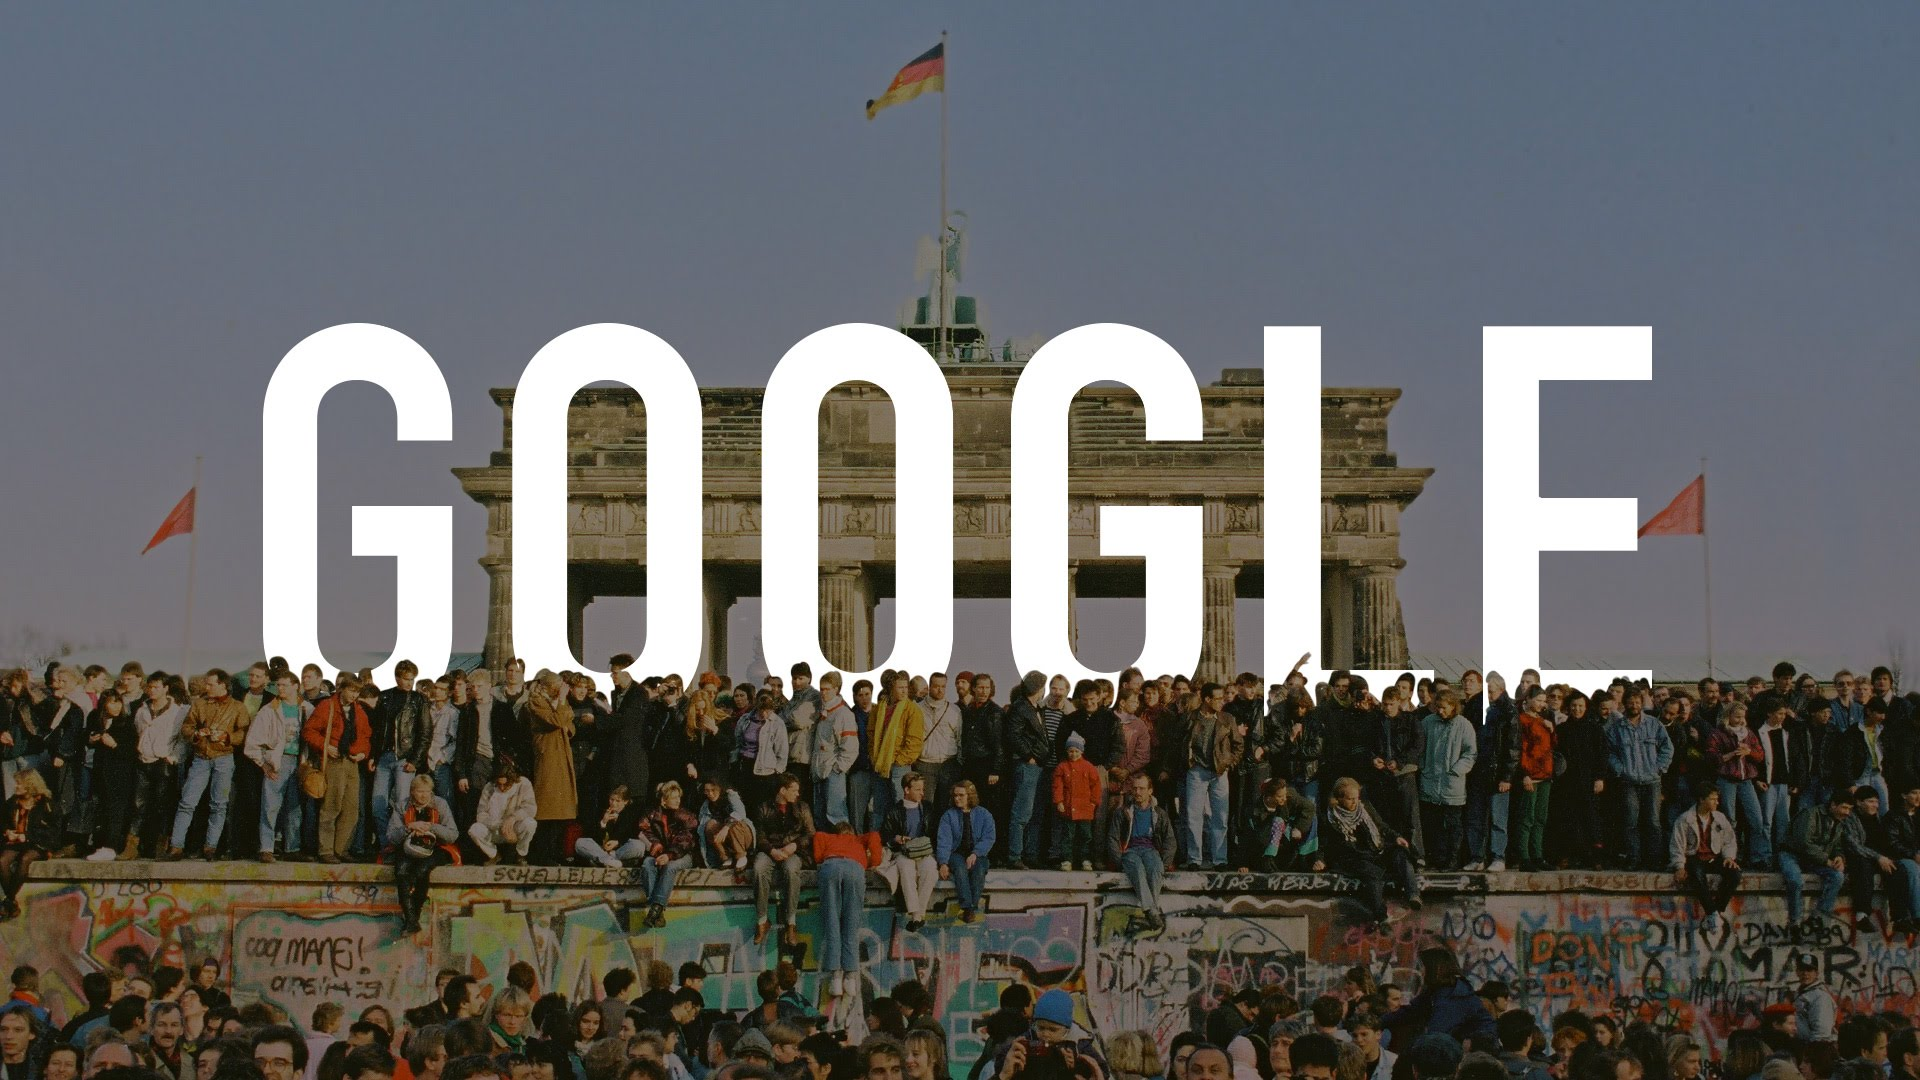 Google commemorates the 25th anniversary of the fall of the berlin google commemorates the 25th anniversary of the fall of the berlin wall with a google video doodle ccuart Gallery